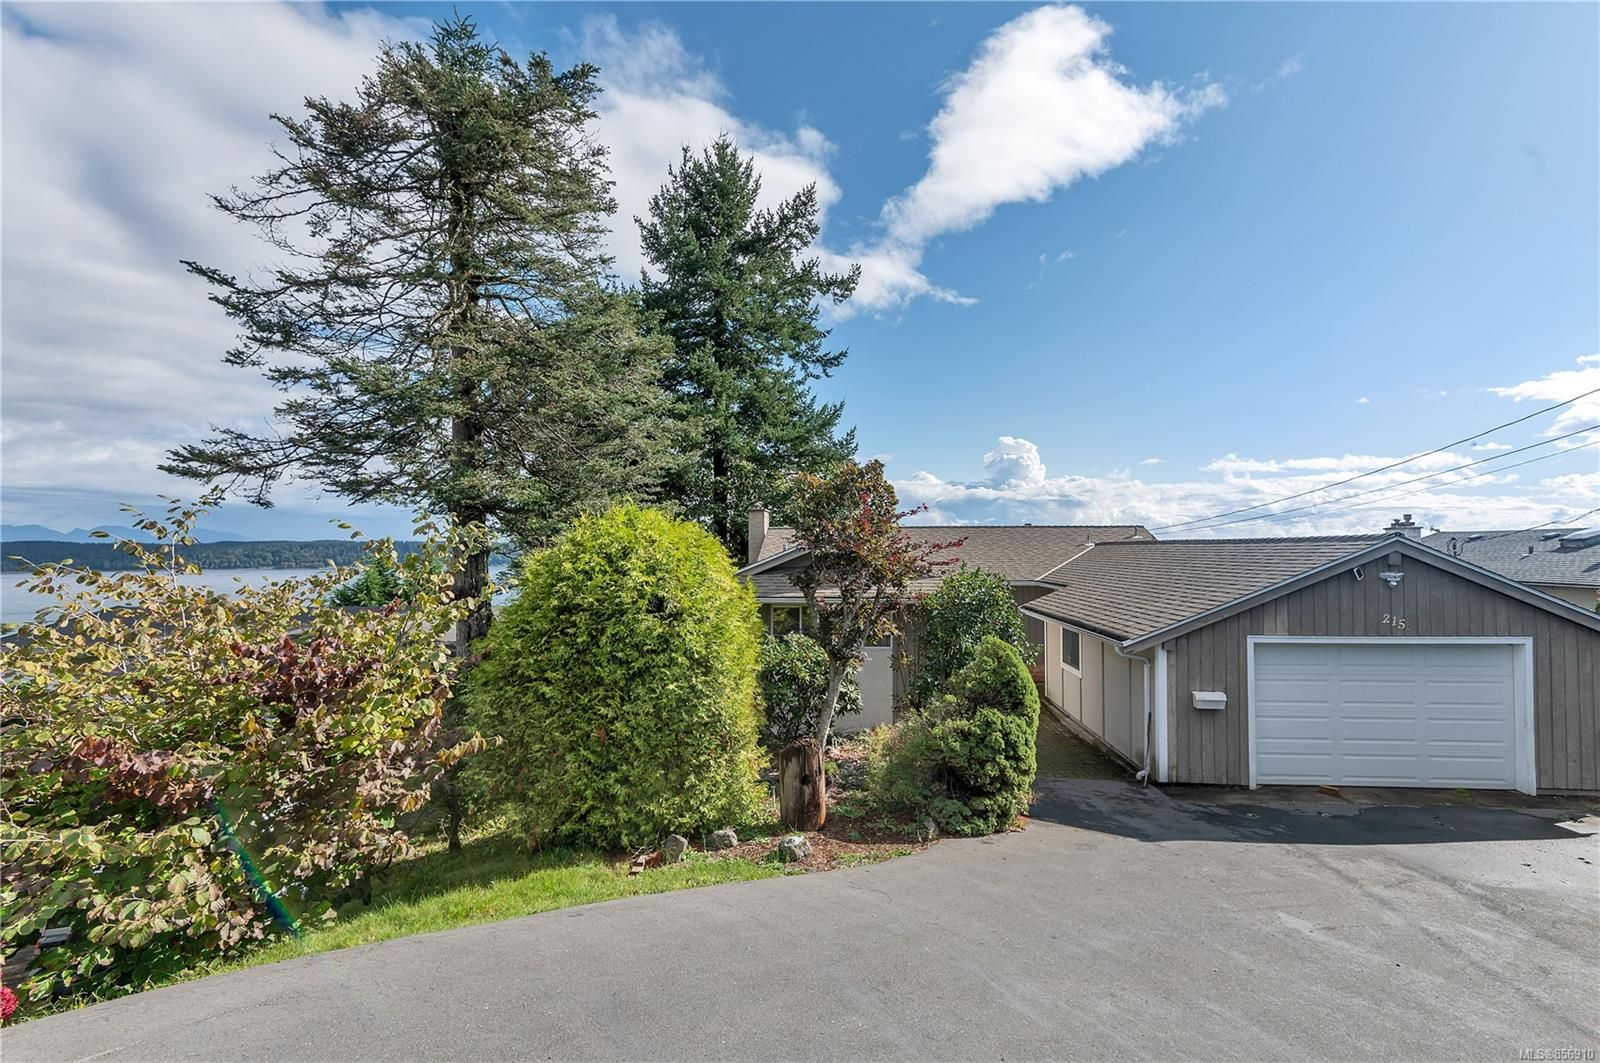 Photo 1: Photos: 215 S Alder St in : CR Campbell River Central House for sale (Campbell River)  : MLS®# 856910